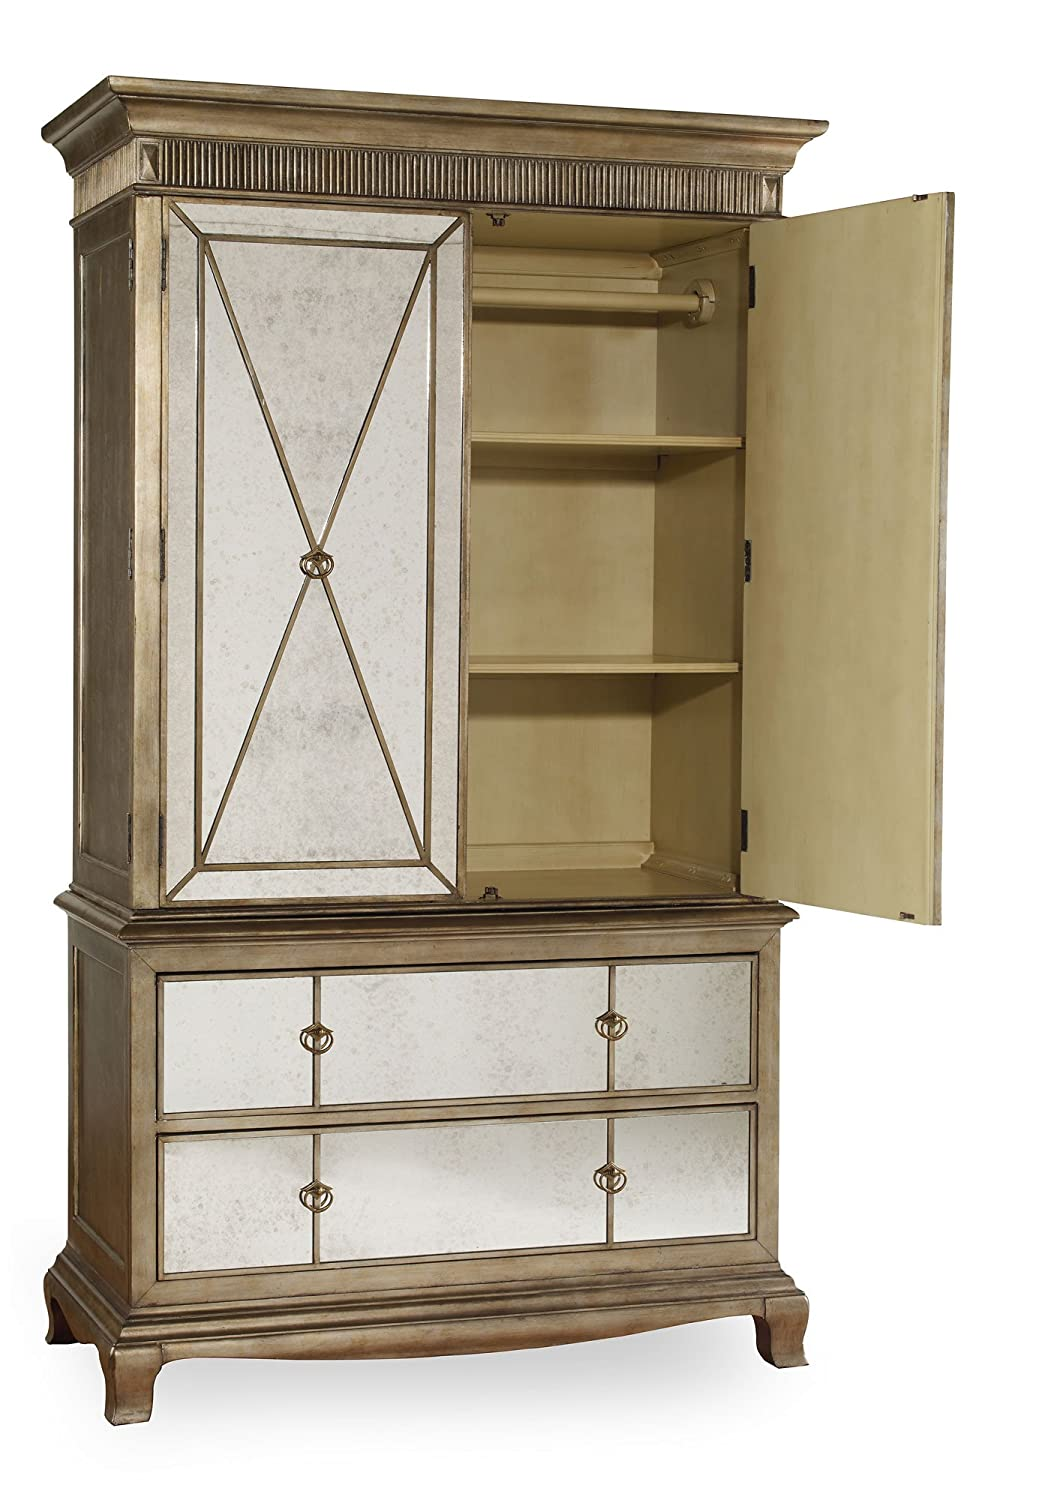 Amazon.com: Hooker Furniture Sanctuary Armoire In Visage: Kitchen U0026 Dining